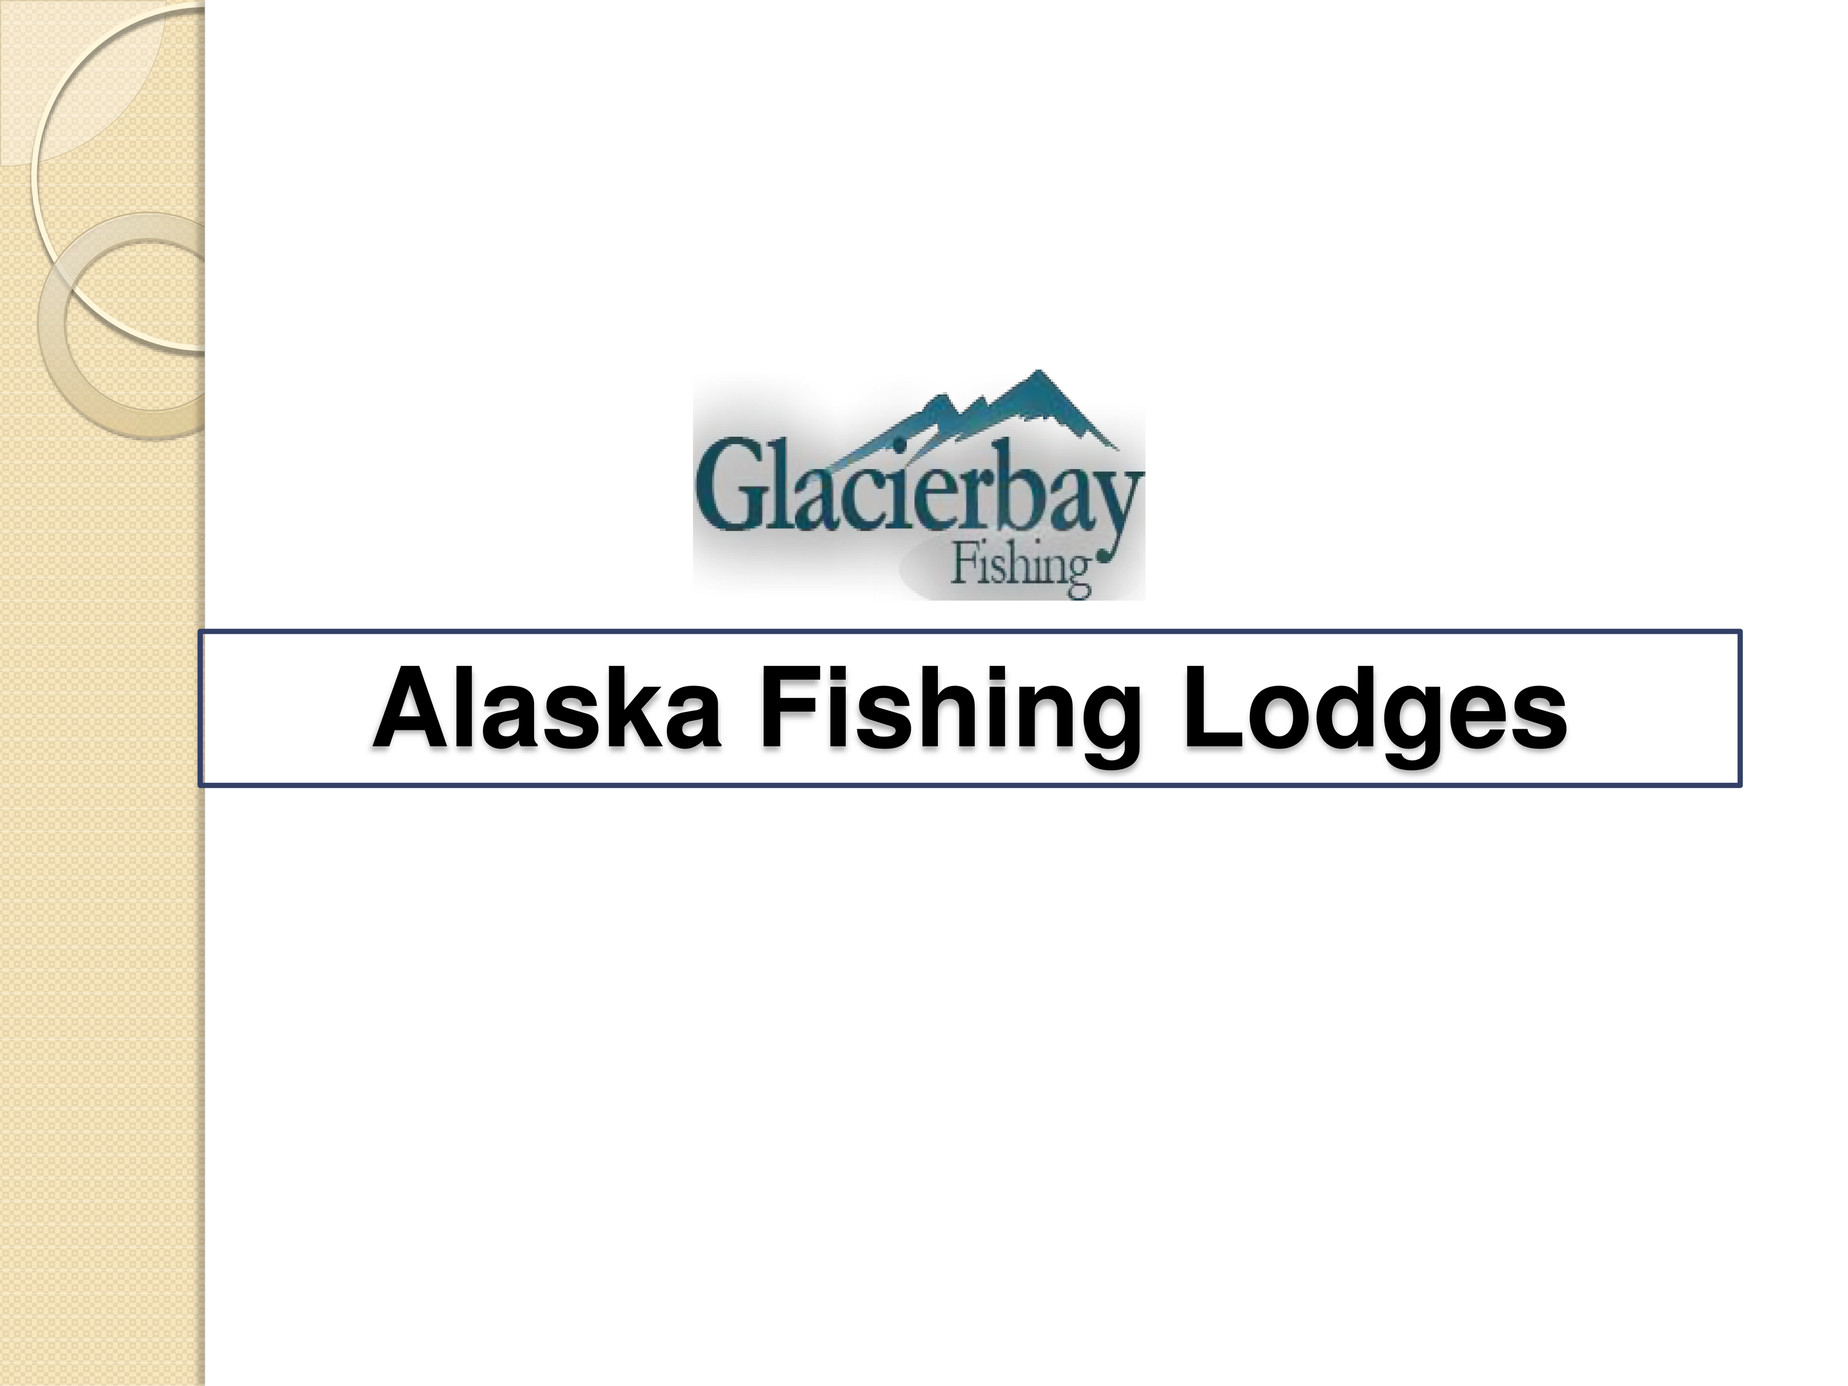 My publications - Alaska Fishing Lodges - Page 1 - Created with Publitas.com